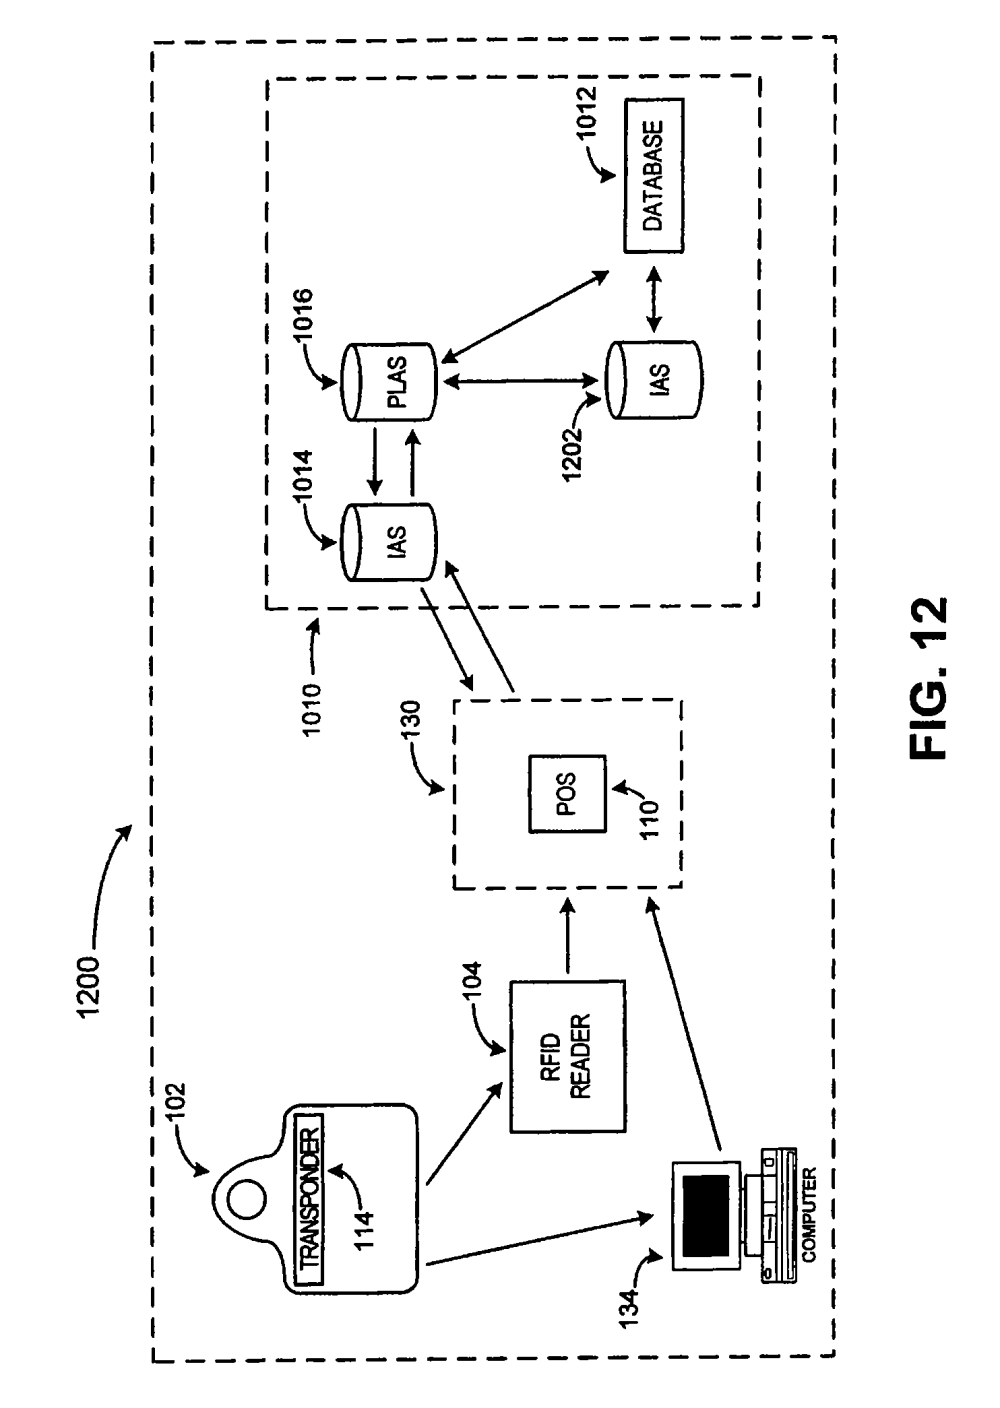 medium resolution of patent us 7 690 577 b2 fullwave rectifier circuit diagram tradeoficcom